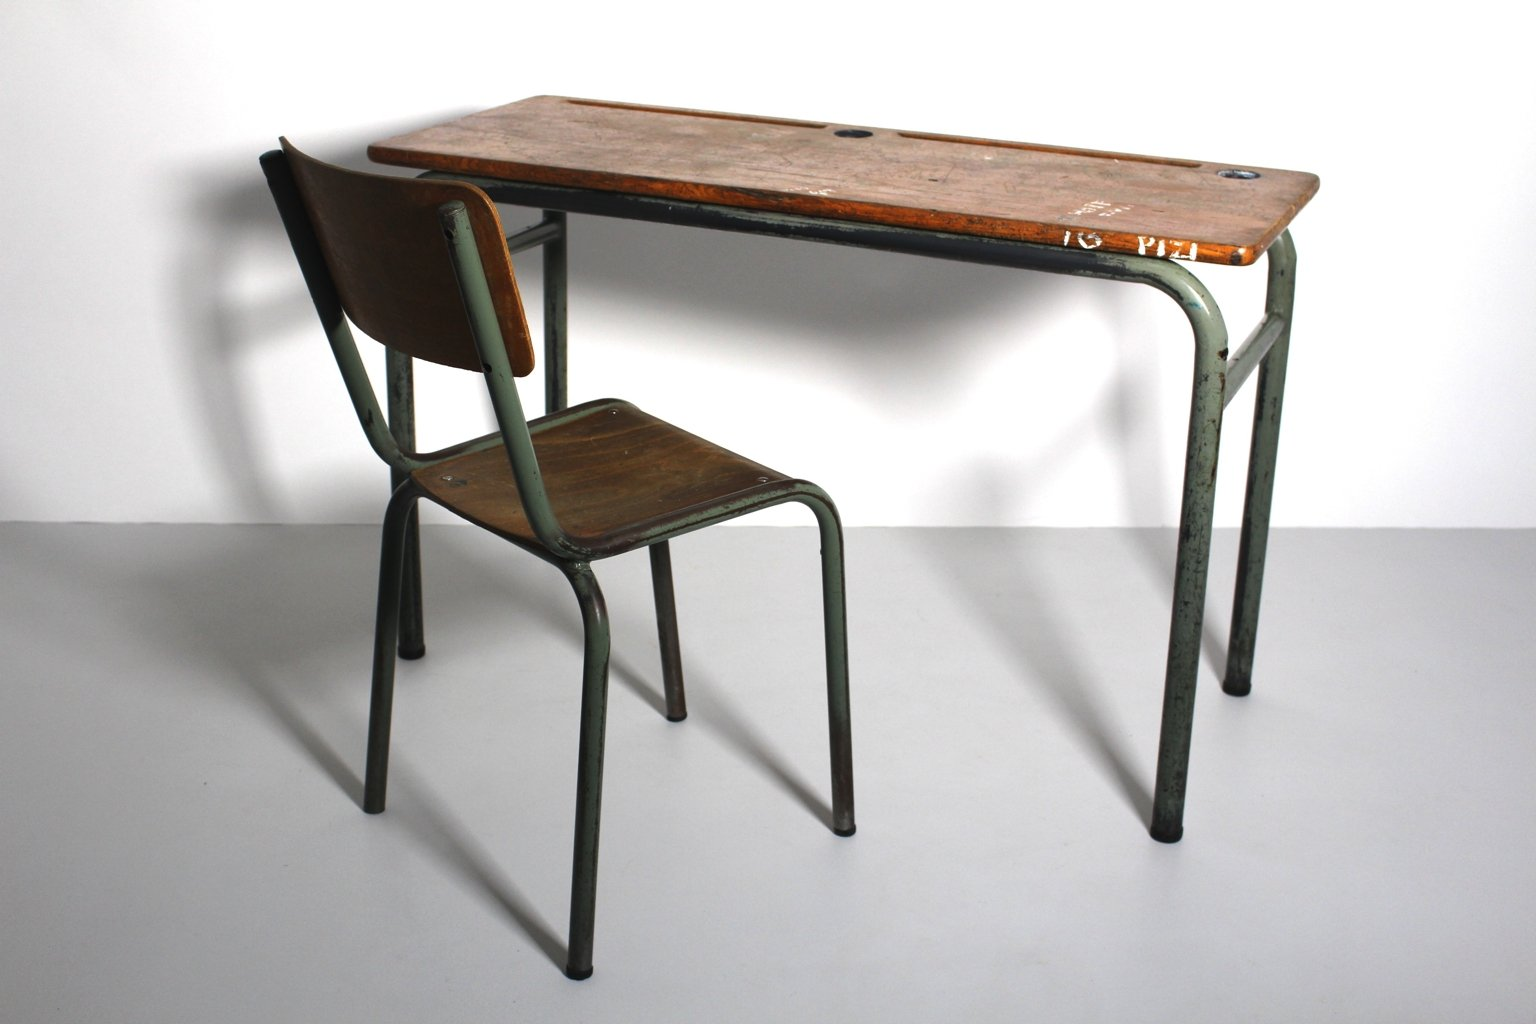 Vintage Style Desk And Chair 1940s Set Of 2